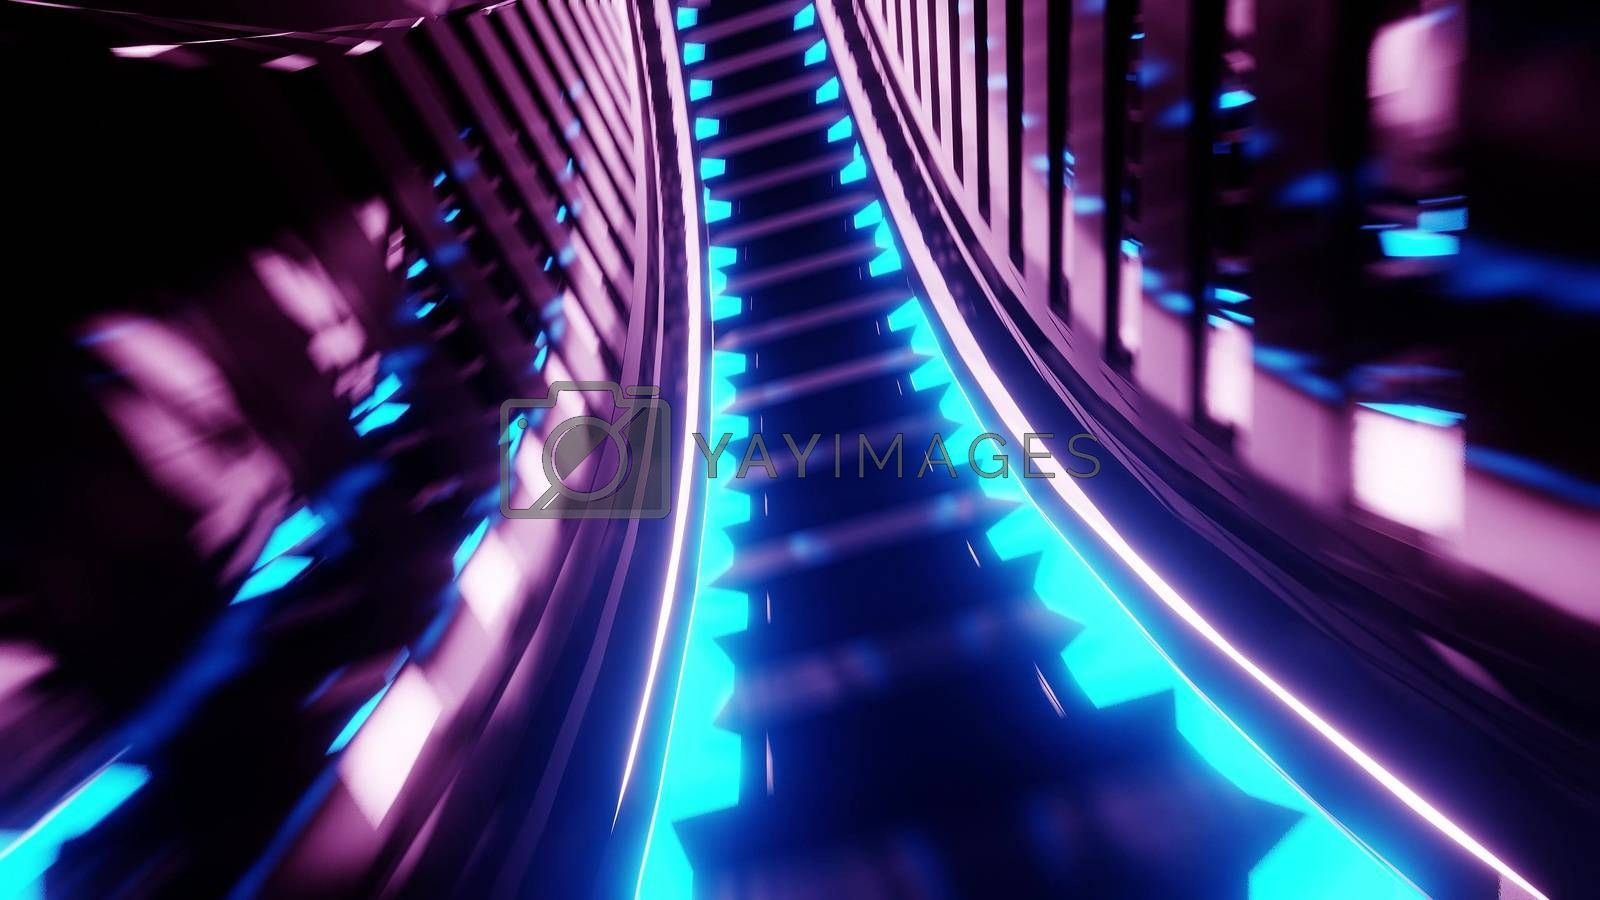 abstract glowing futuristic scifi subway tunnel corridor 3d rendering wallpaper background design, modern abstract sci-fi art with glowing lights 3d illustration